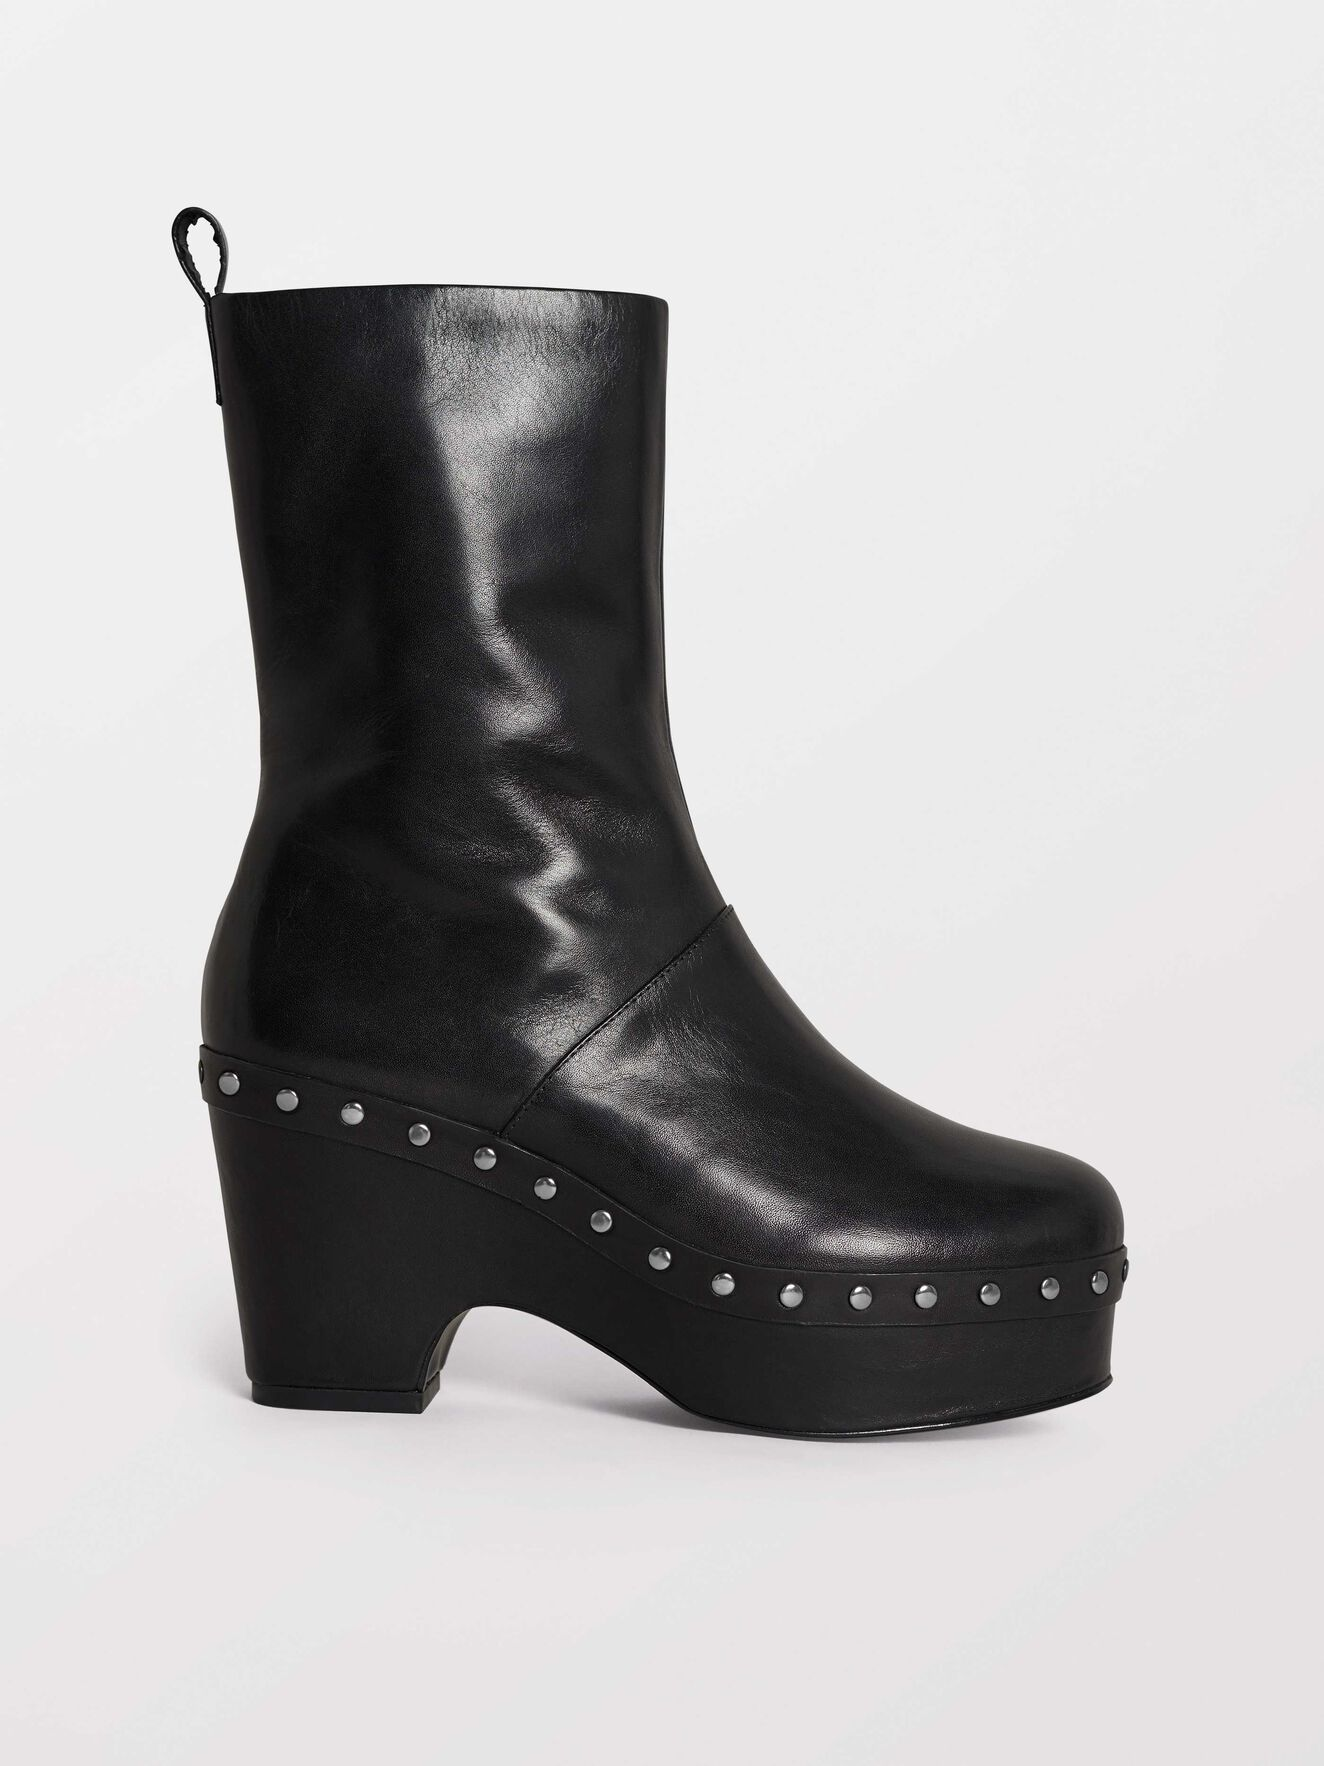 Botan Boots in Black from Tiger of Sweden